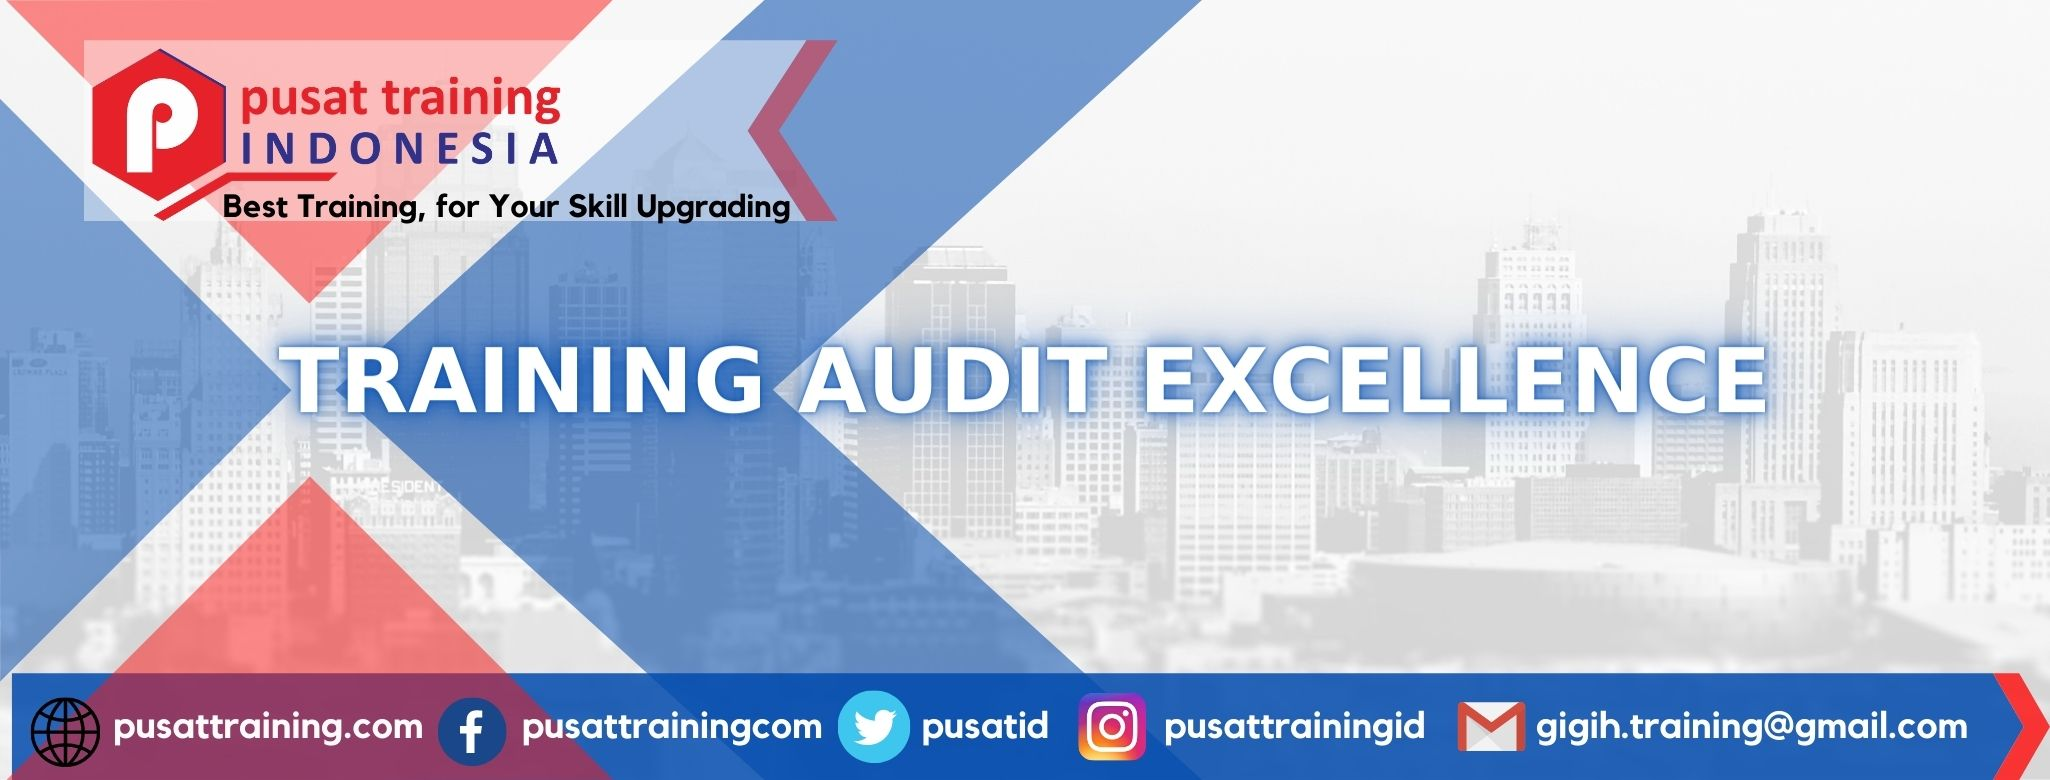 training-audit-excellence